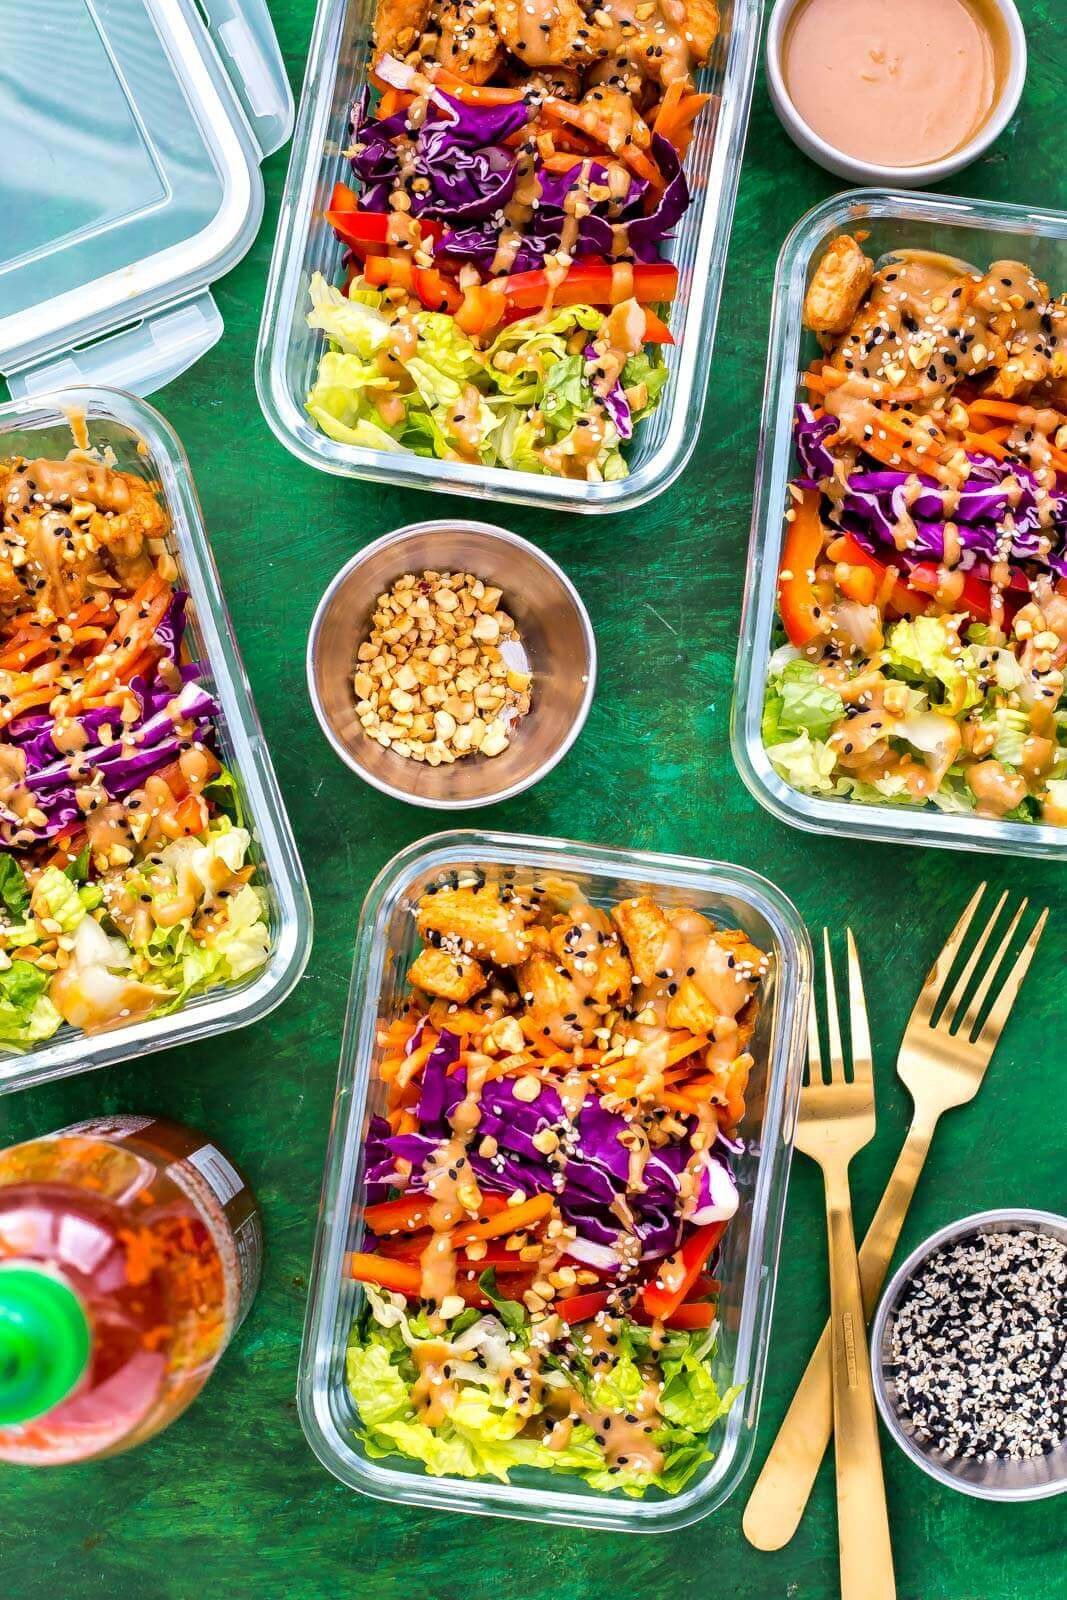 Healthy Breakfast For Work  20 Easy Healthy Meal Prep Lunch Ideas for Work The Girl